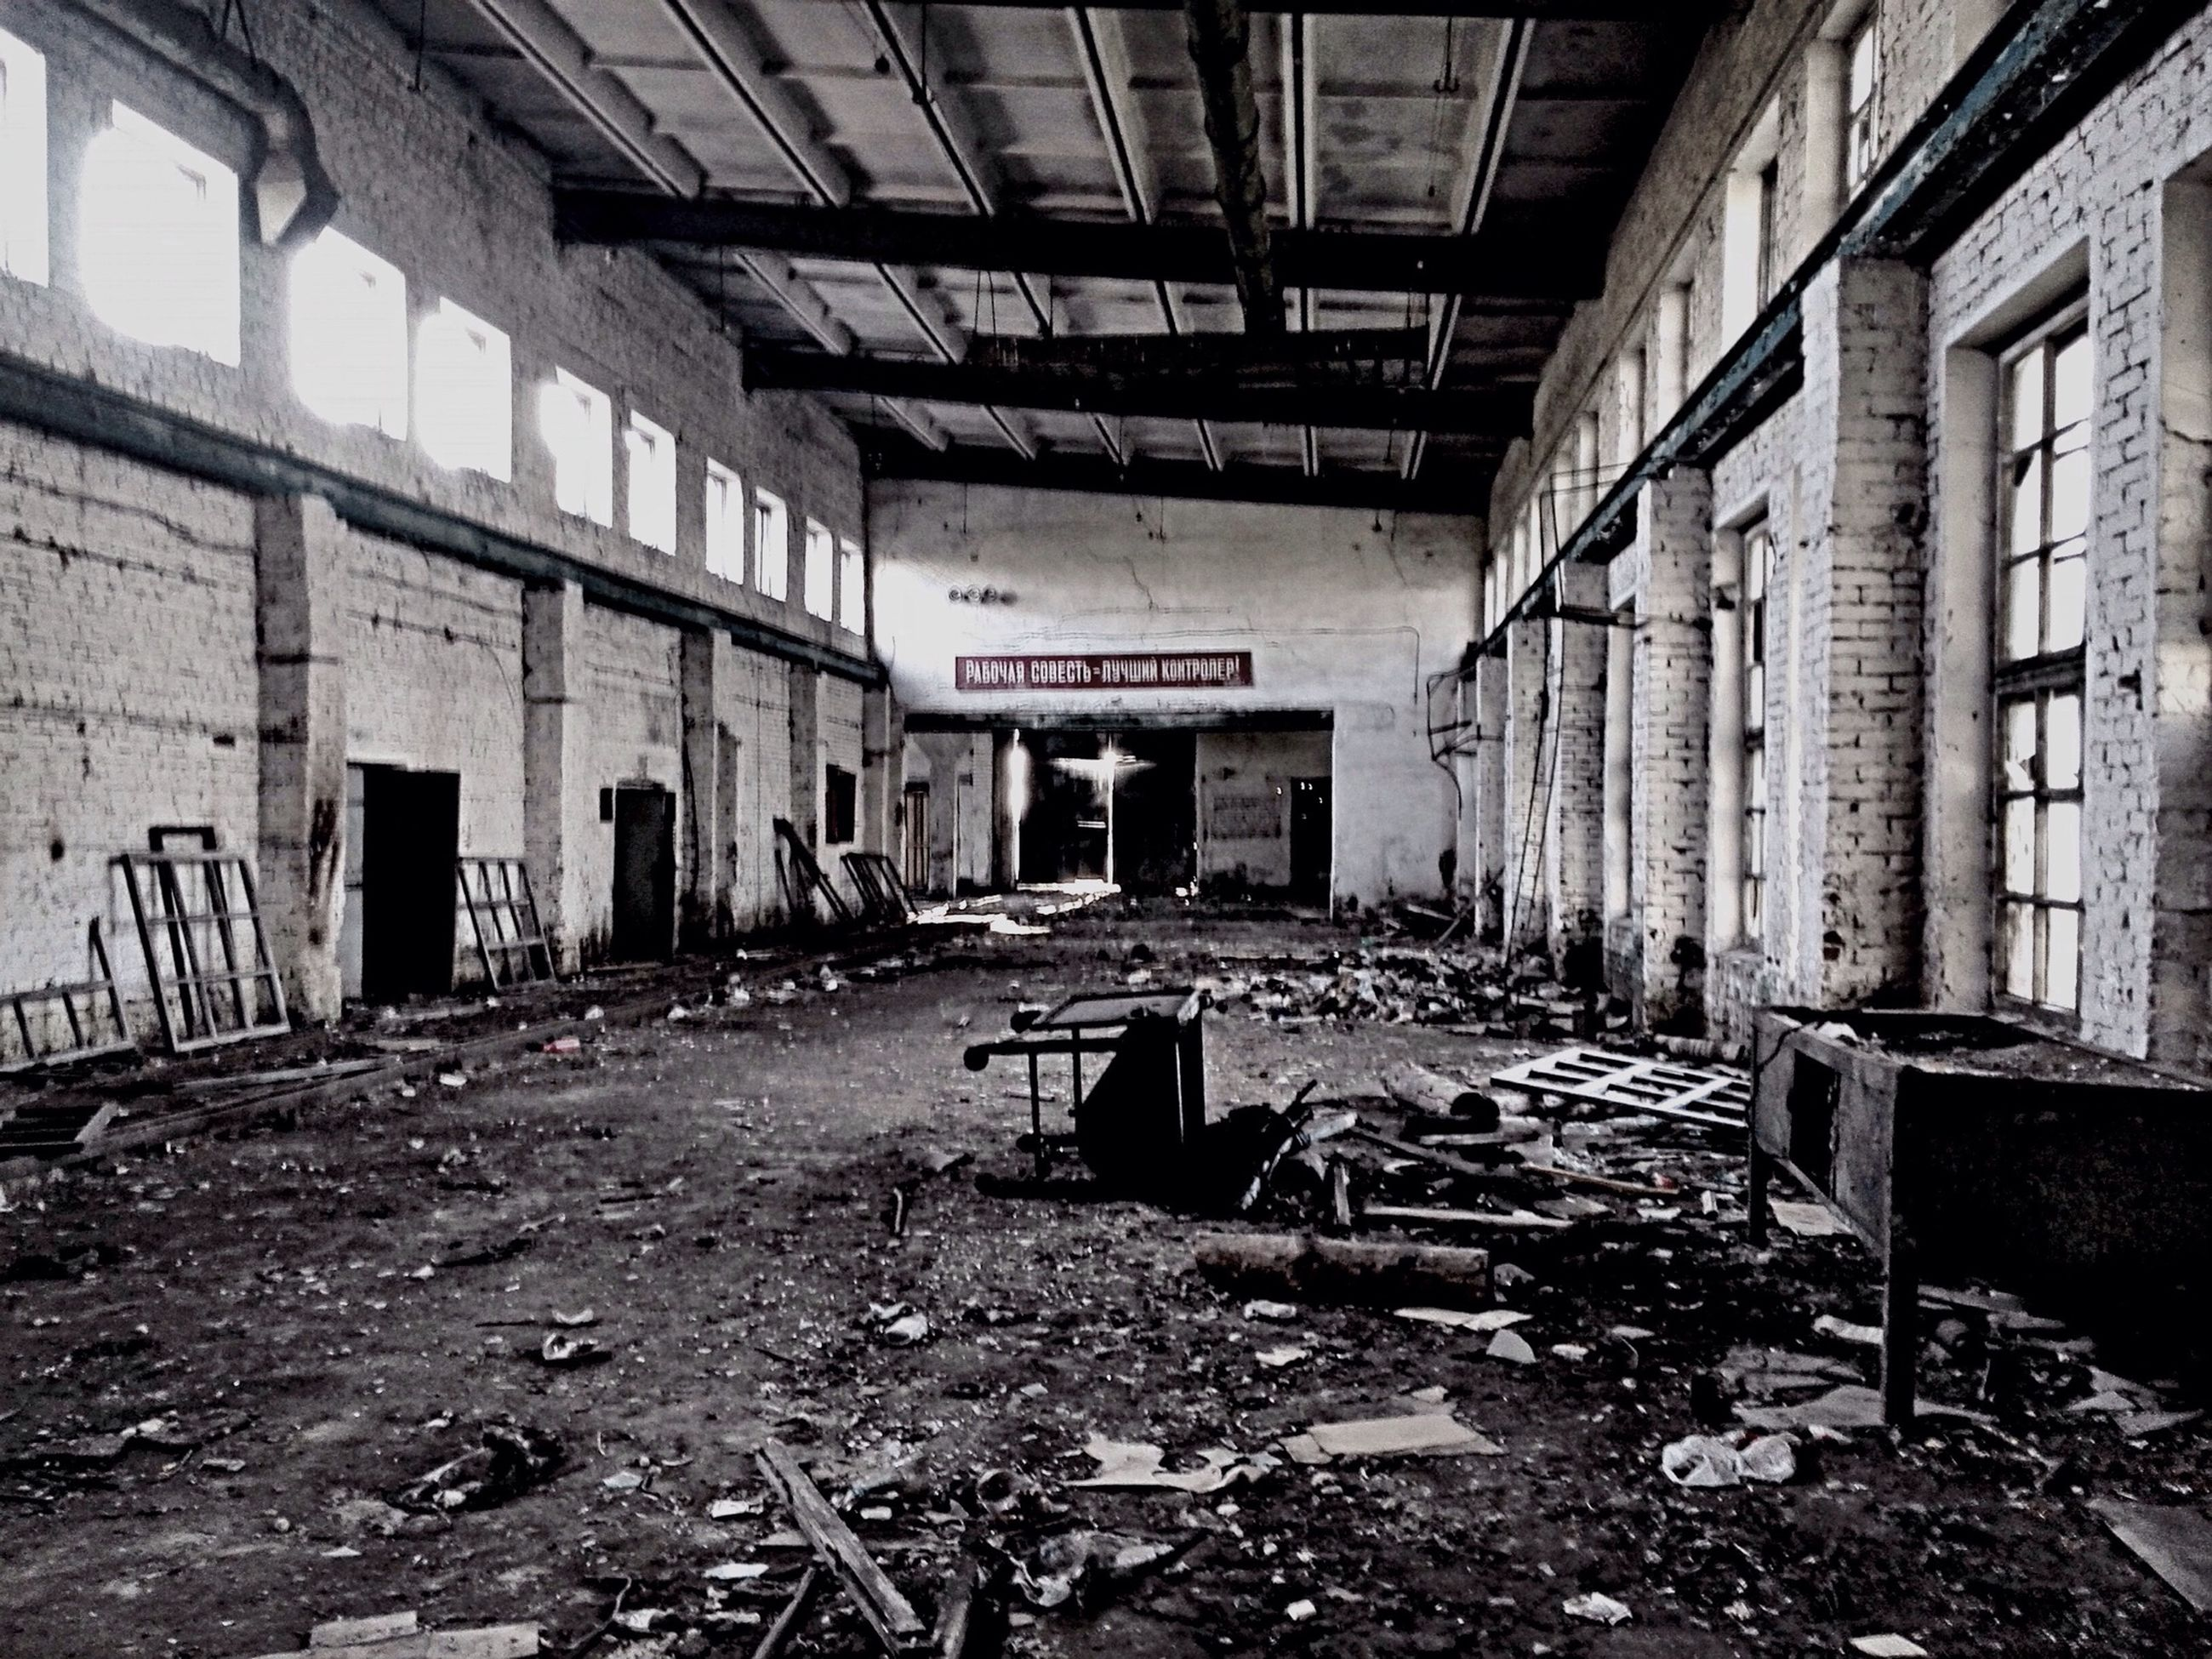 abandoned, architecture, obsolete, built structure, damaged, graffiti, deterioration, run-down, old, indoors, messy, interior, bad condition, wall - building feature, building, building exterior, weathered, dirty, empty, absence